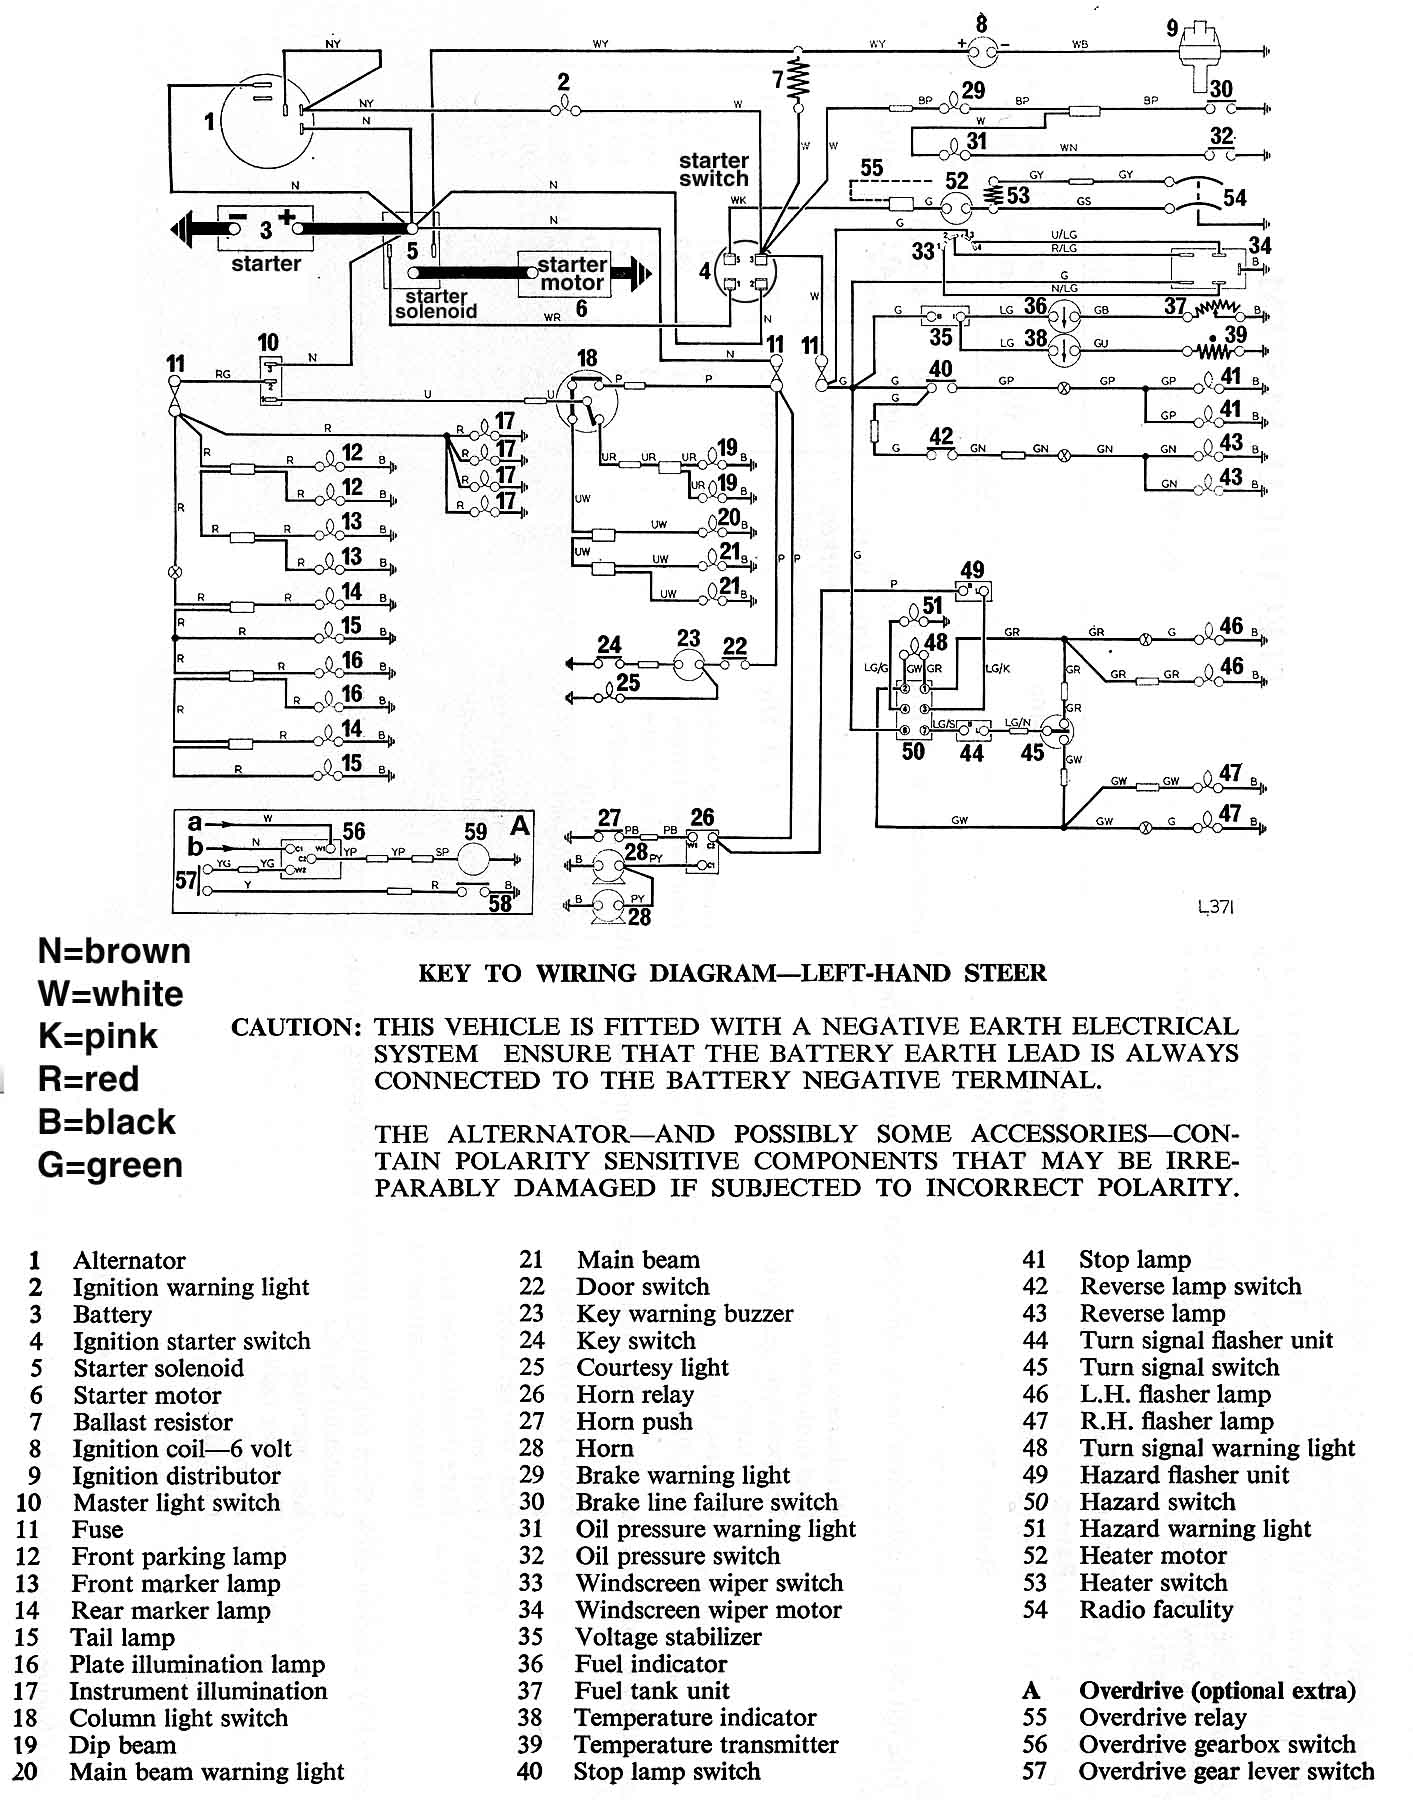 Color Wiring Diagram For 1977 Triumph Spitfire Schema Diagrams 73 Cj5 Harness Schematics And Gt6 Herald 66